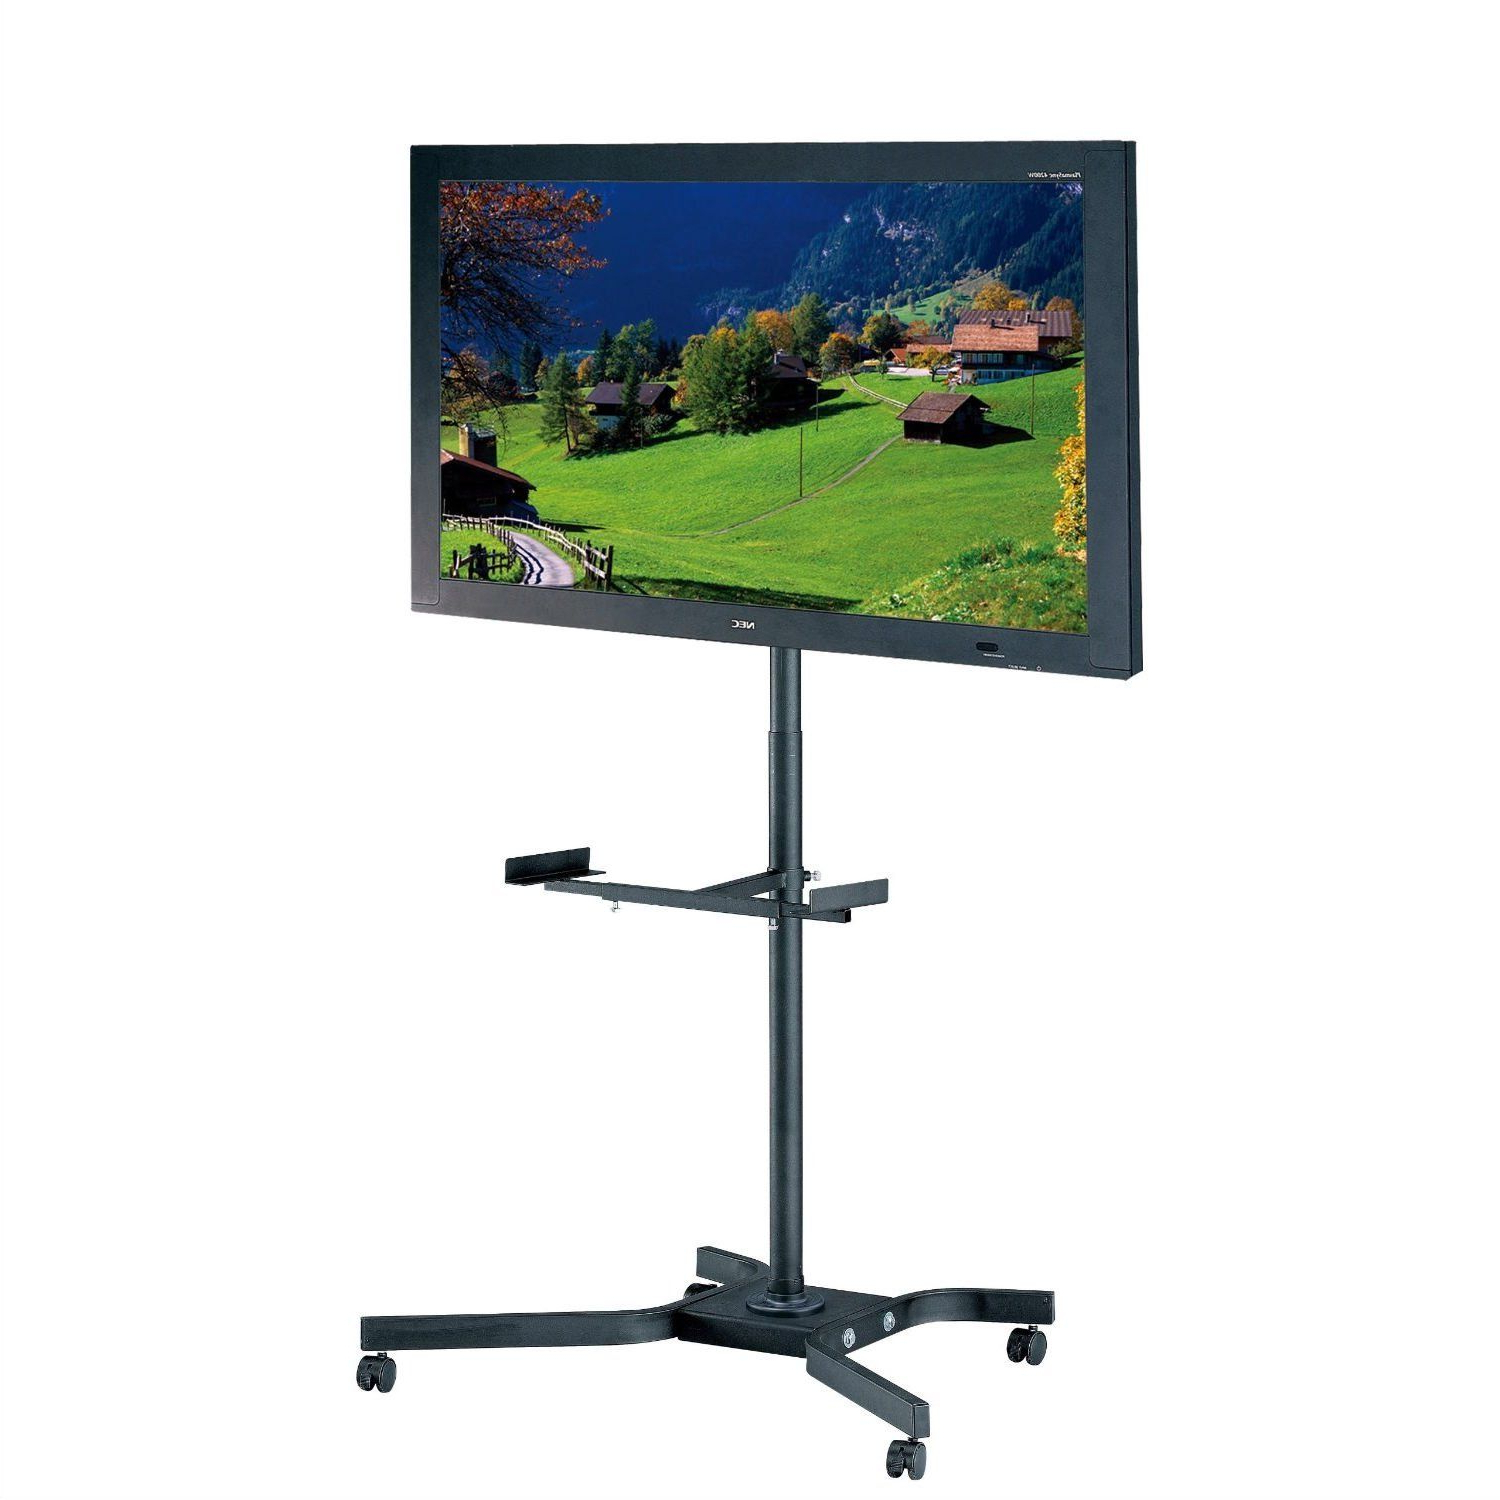 Mobile Tv Cart Metal Stand For Up To 46 Inch Tvs W/ Swivel Regarding Mobile Tv Stands With Lockable Wheels For Corner (View 5 of 20)